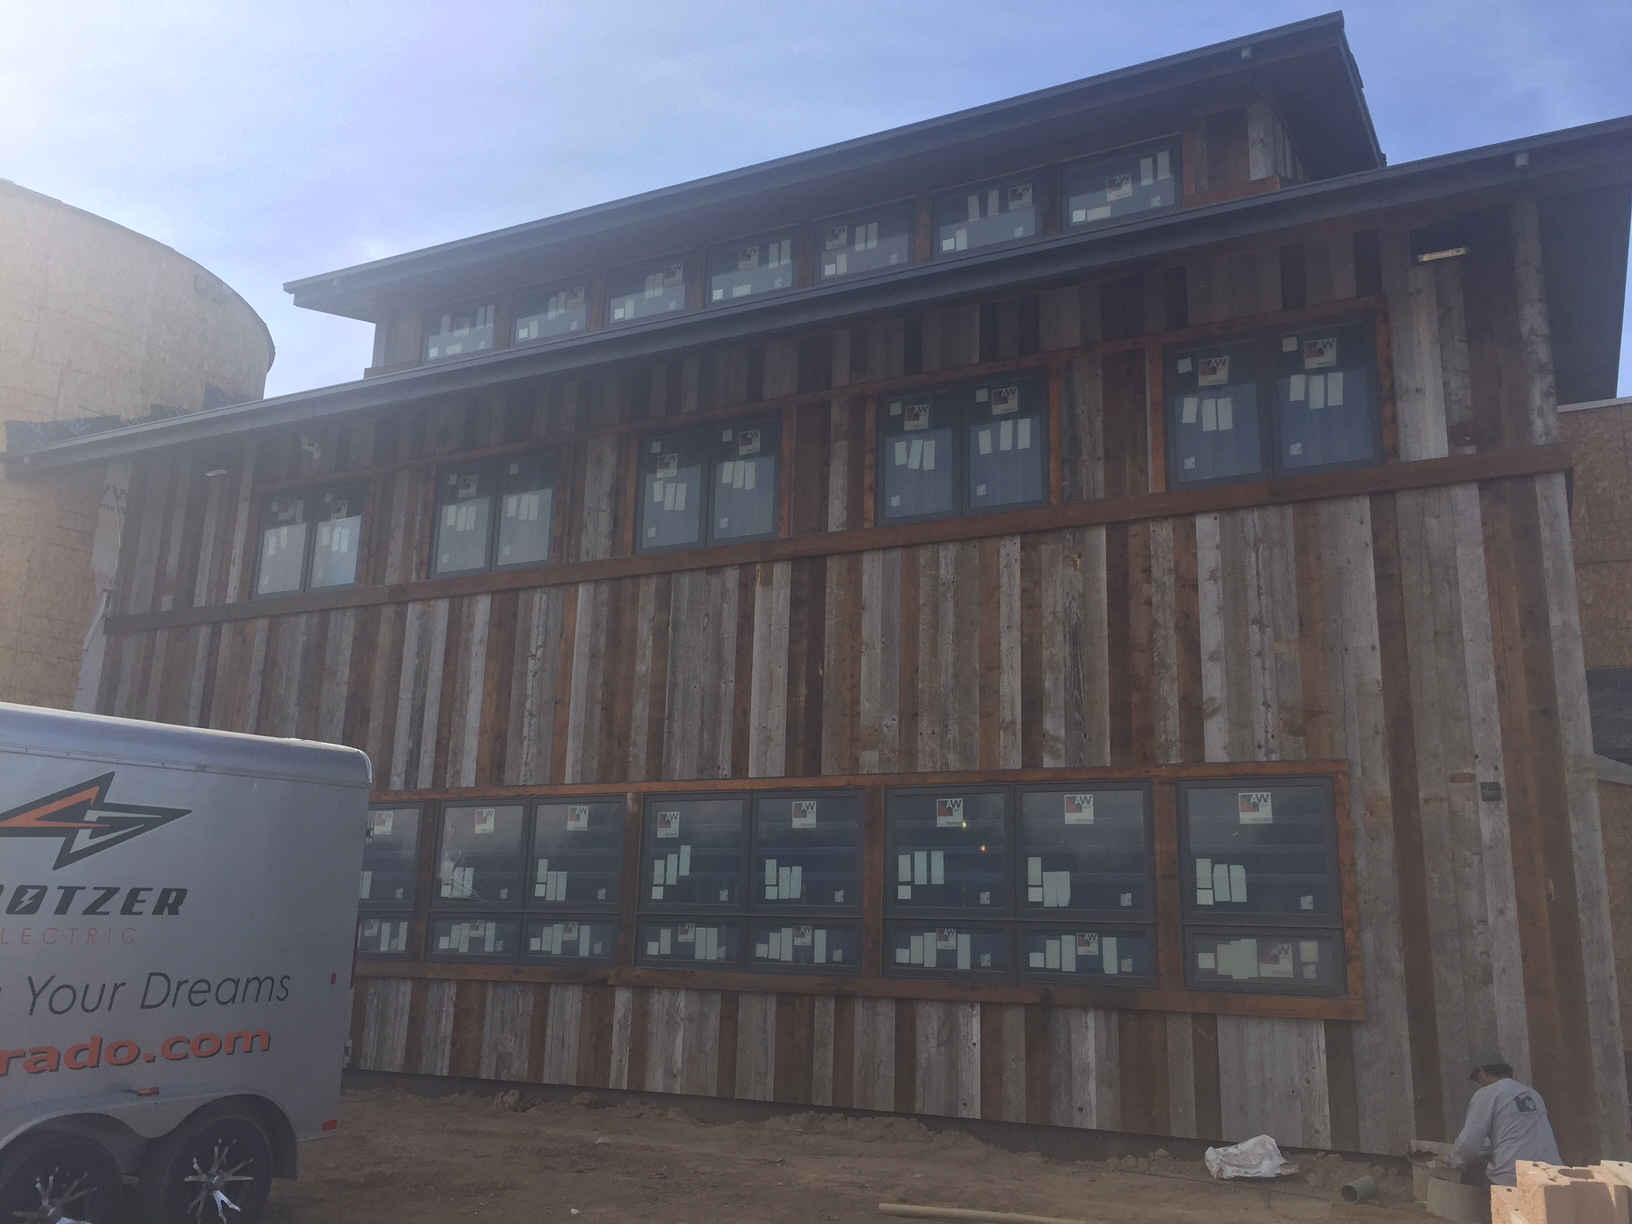 Designs by Sundown's new 7,200 sq. ft. corporate office.  Andersen E-Series windows supplied by Mountain View Window & Door and trusted advisors for this job was Devon Tilly.